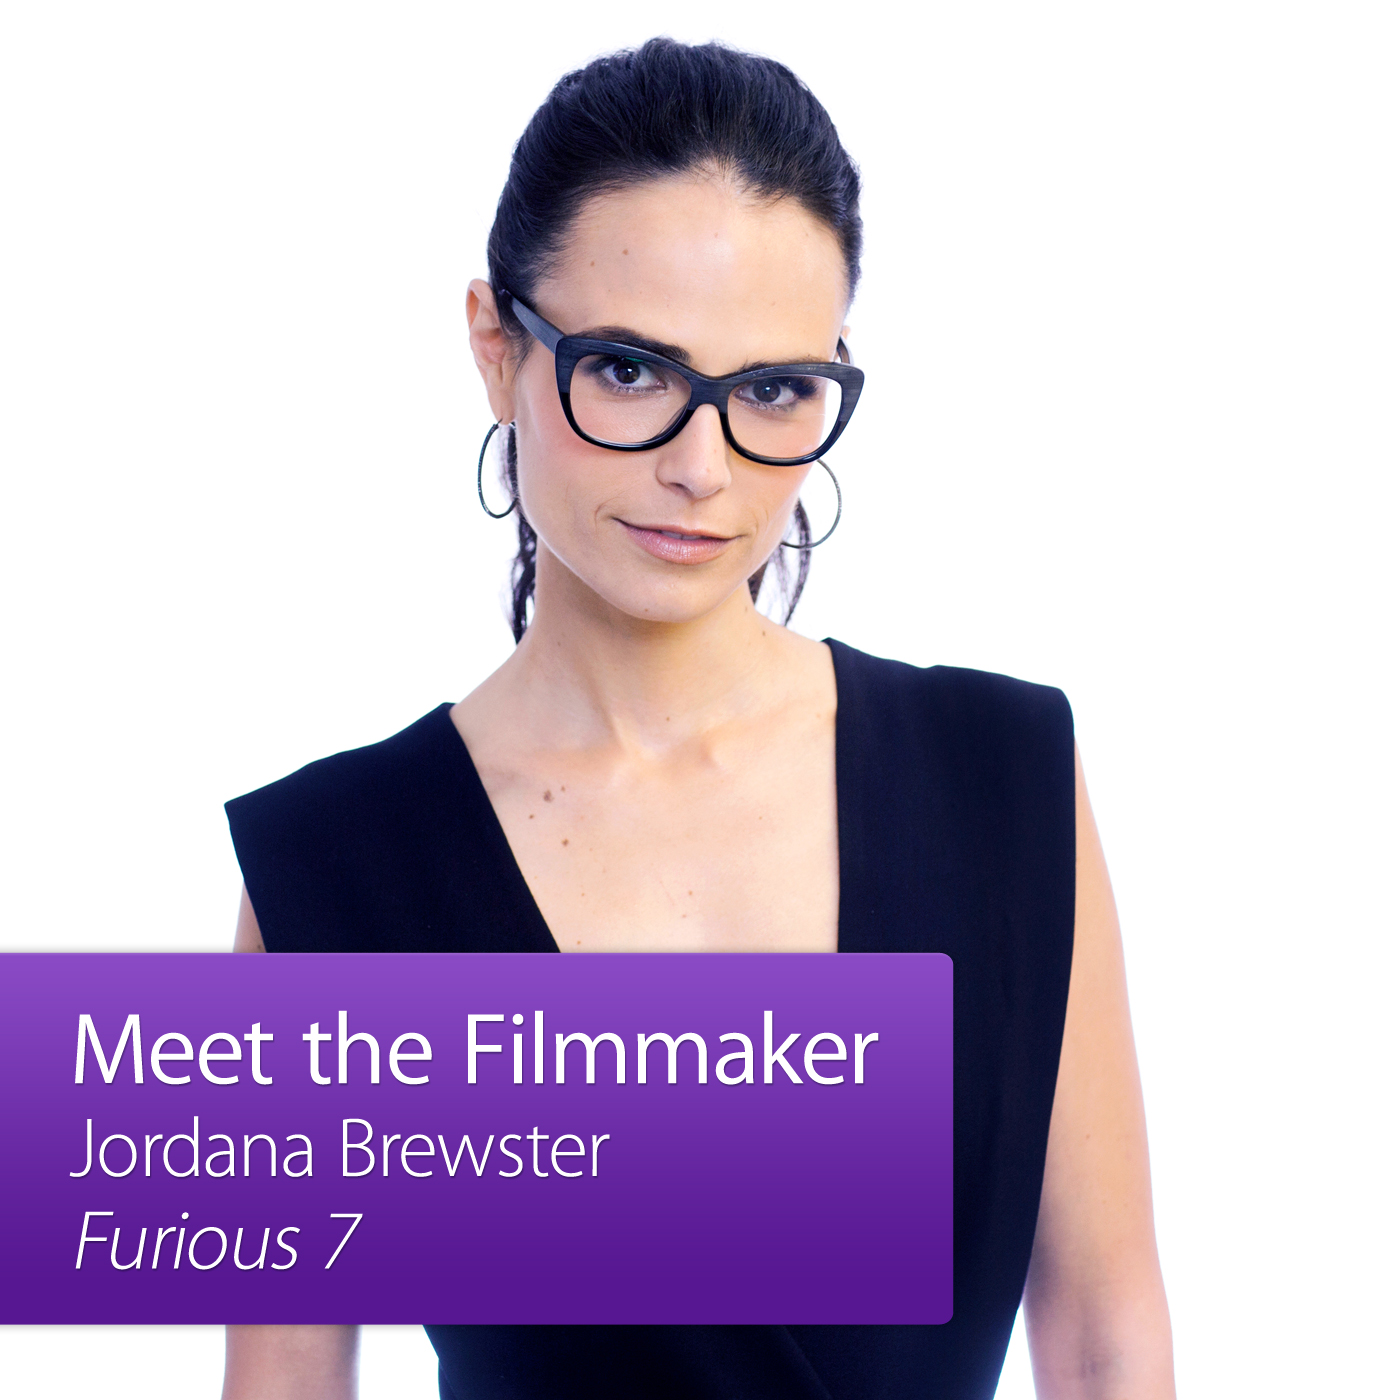 Furious 7: Meet The Filmmaker